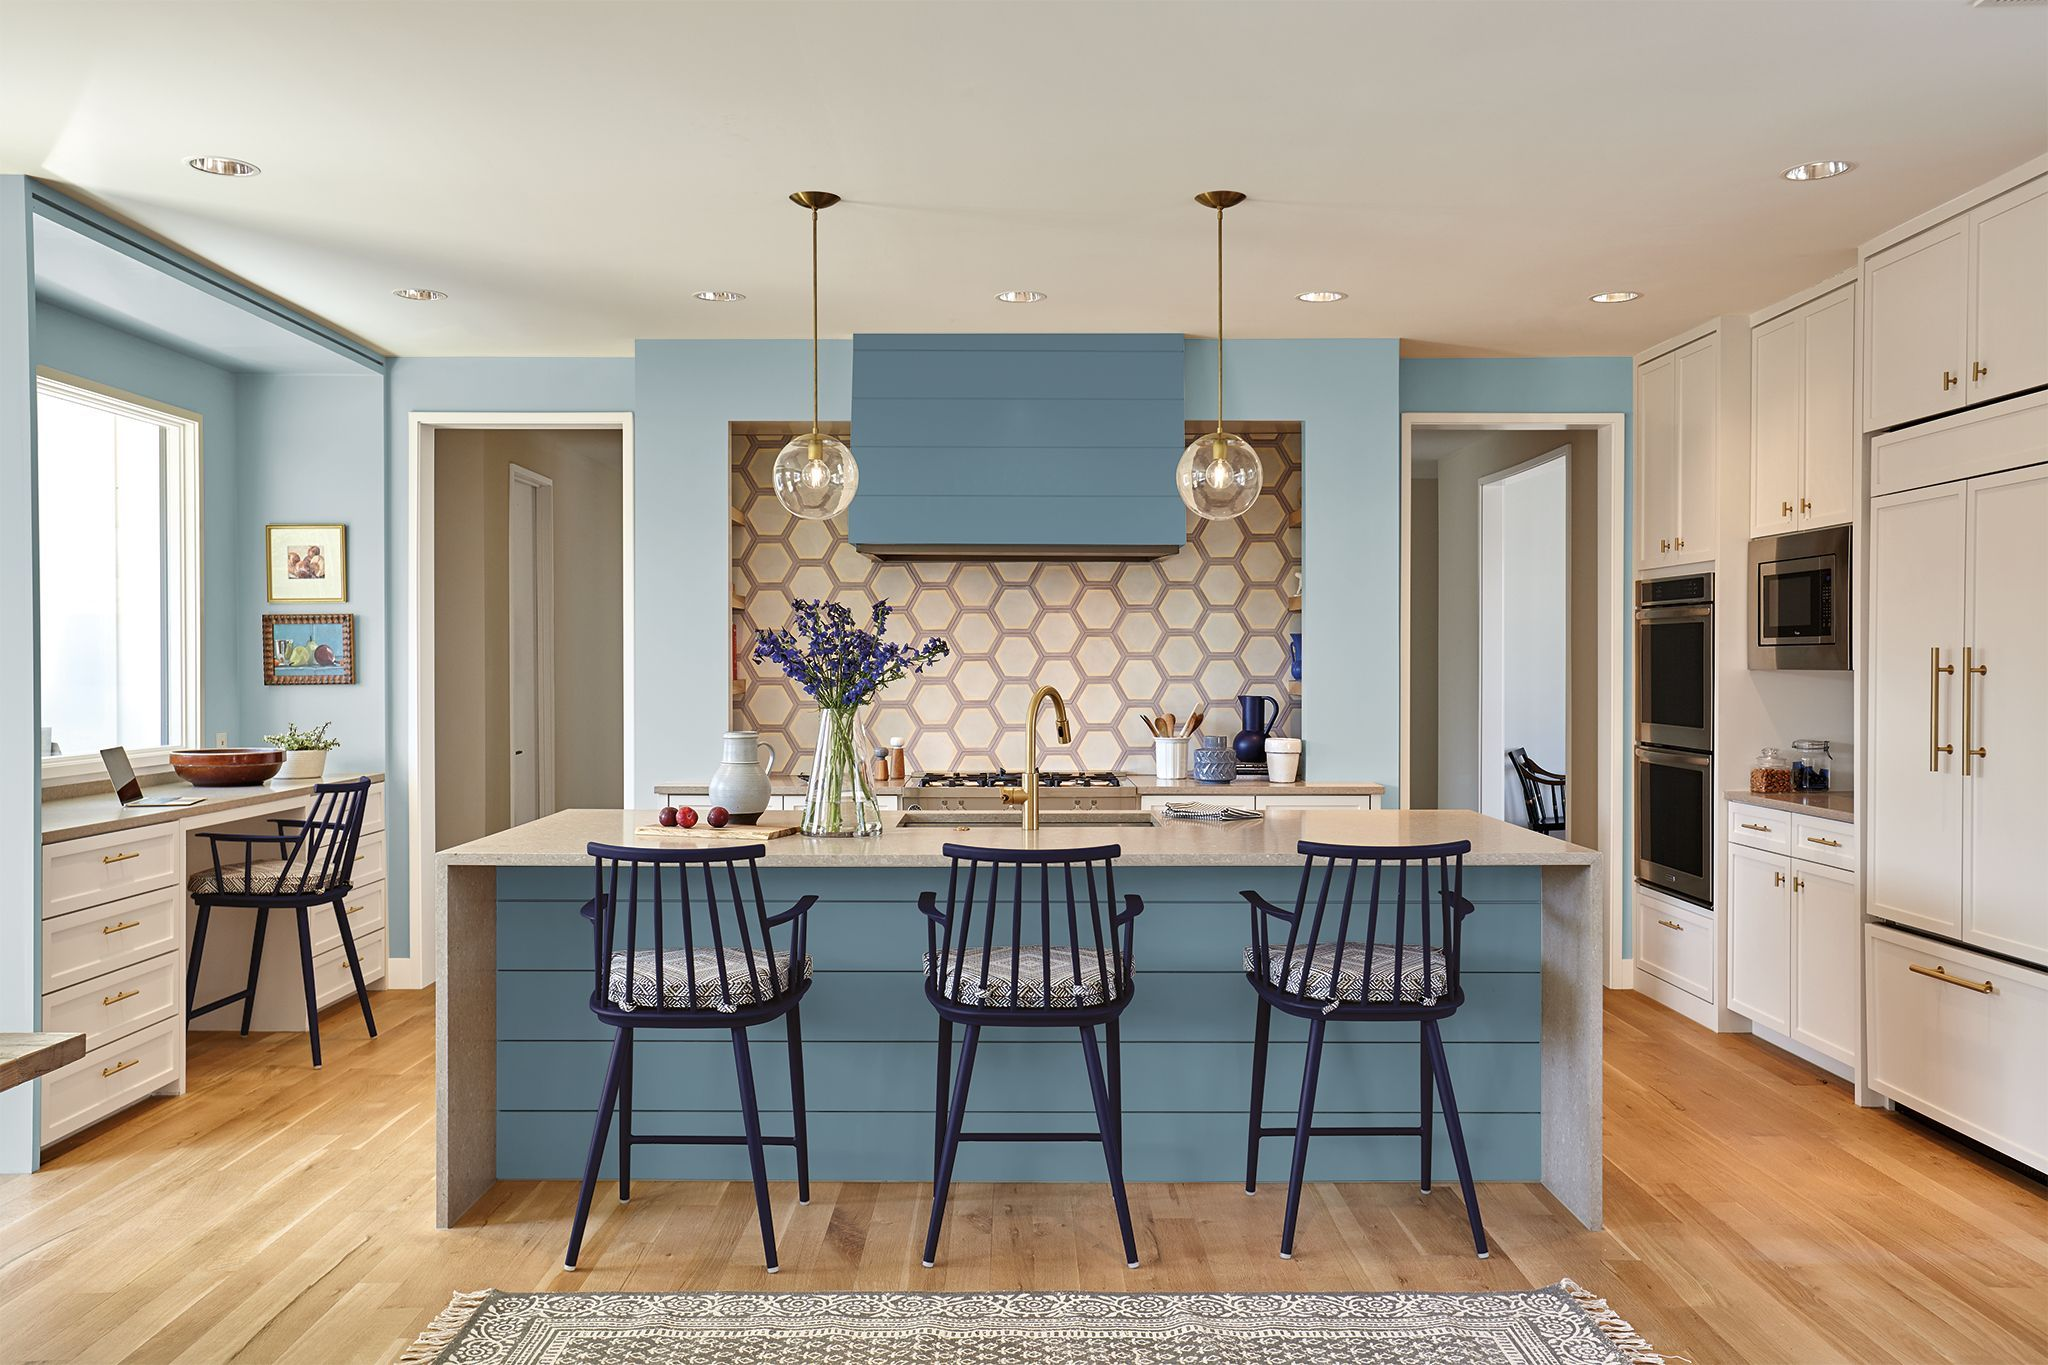 Blue Kitchen Ideas   40 Designer Blue Kitchens   Blue Walls U0026 Decor Ideas  For Kitchens